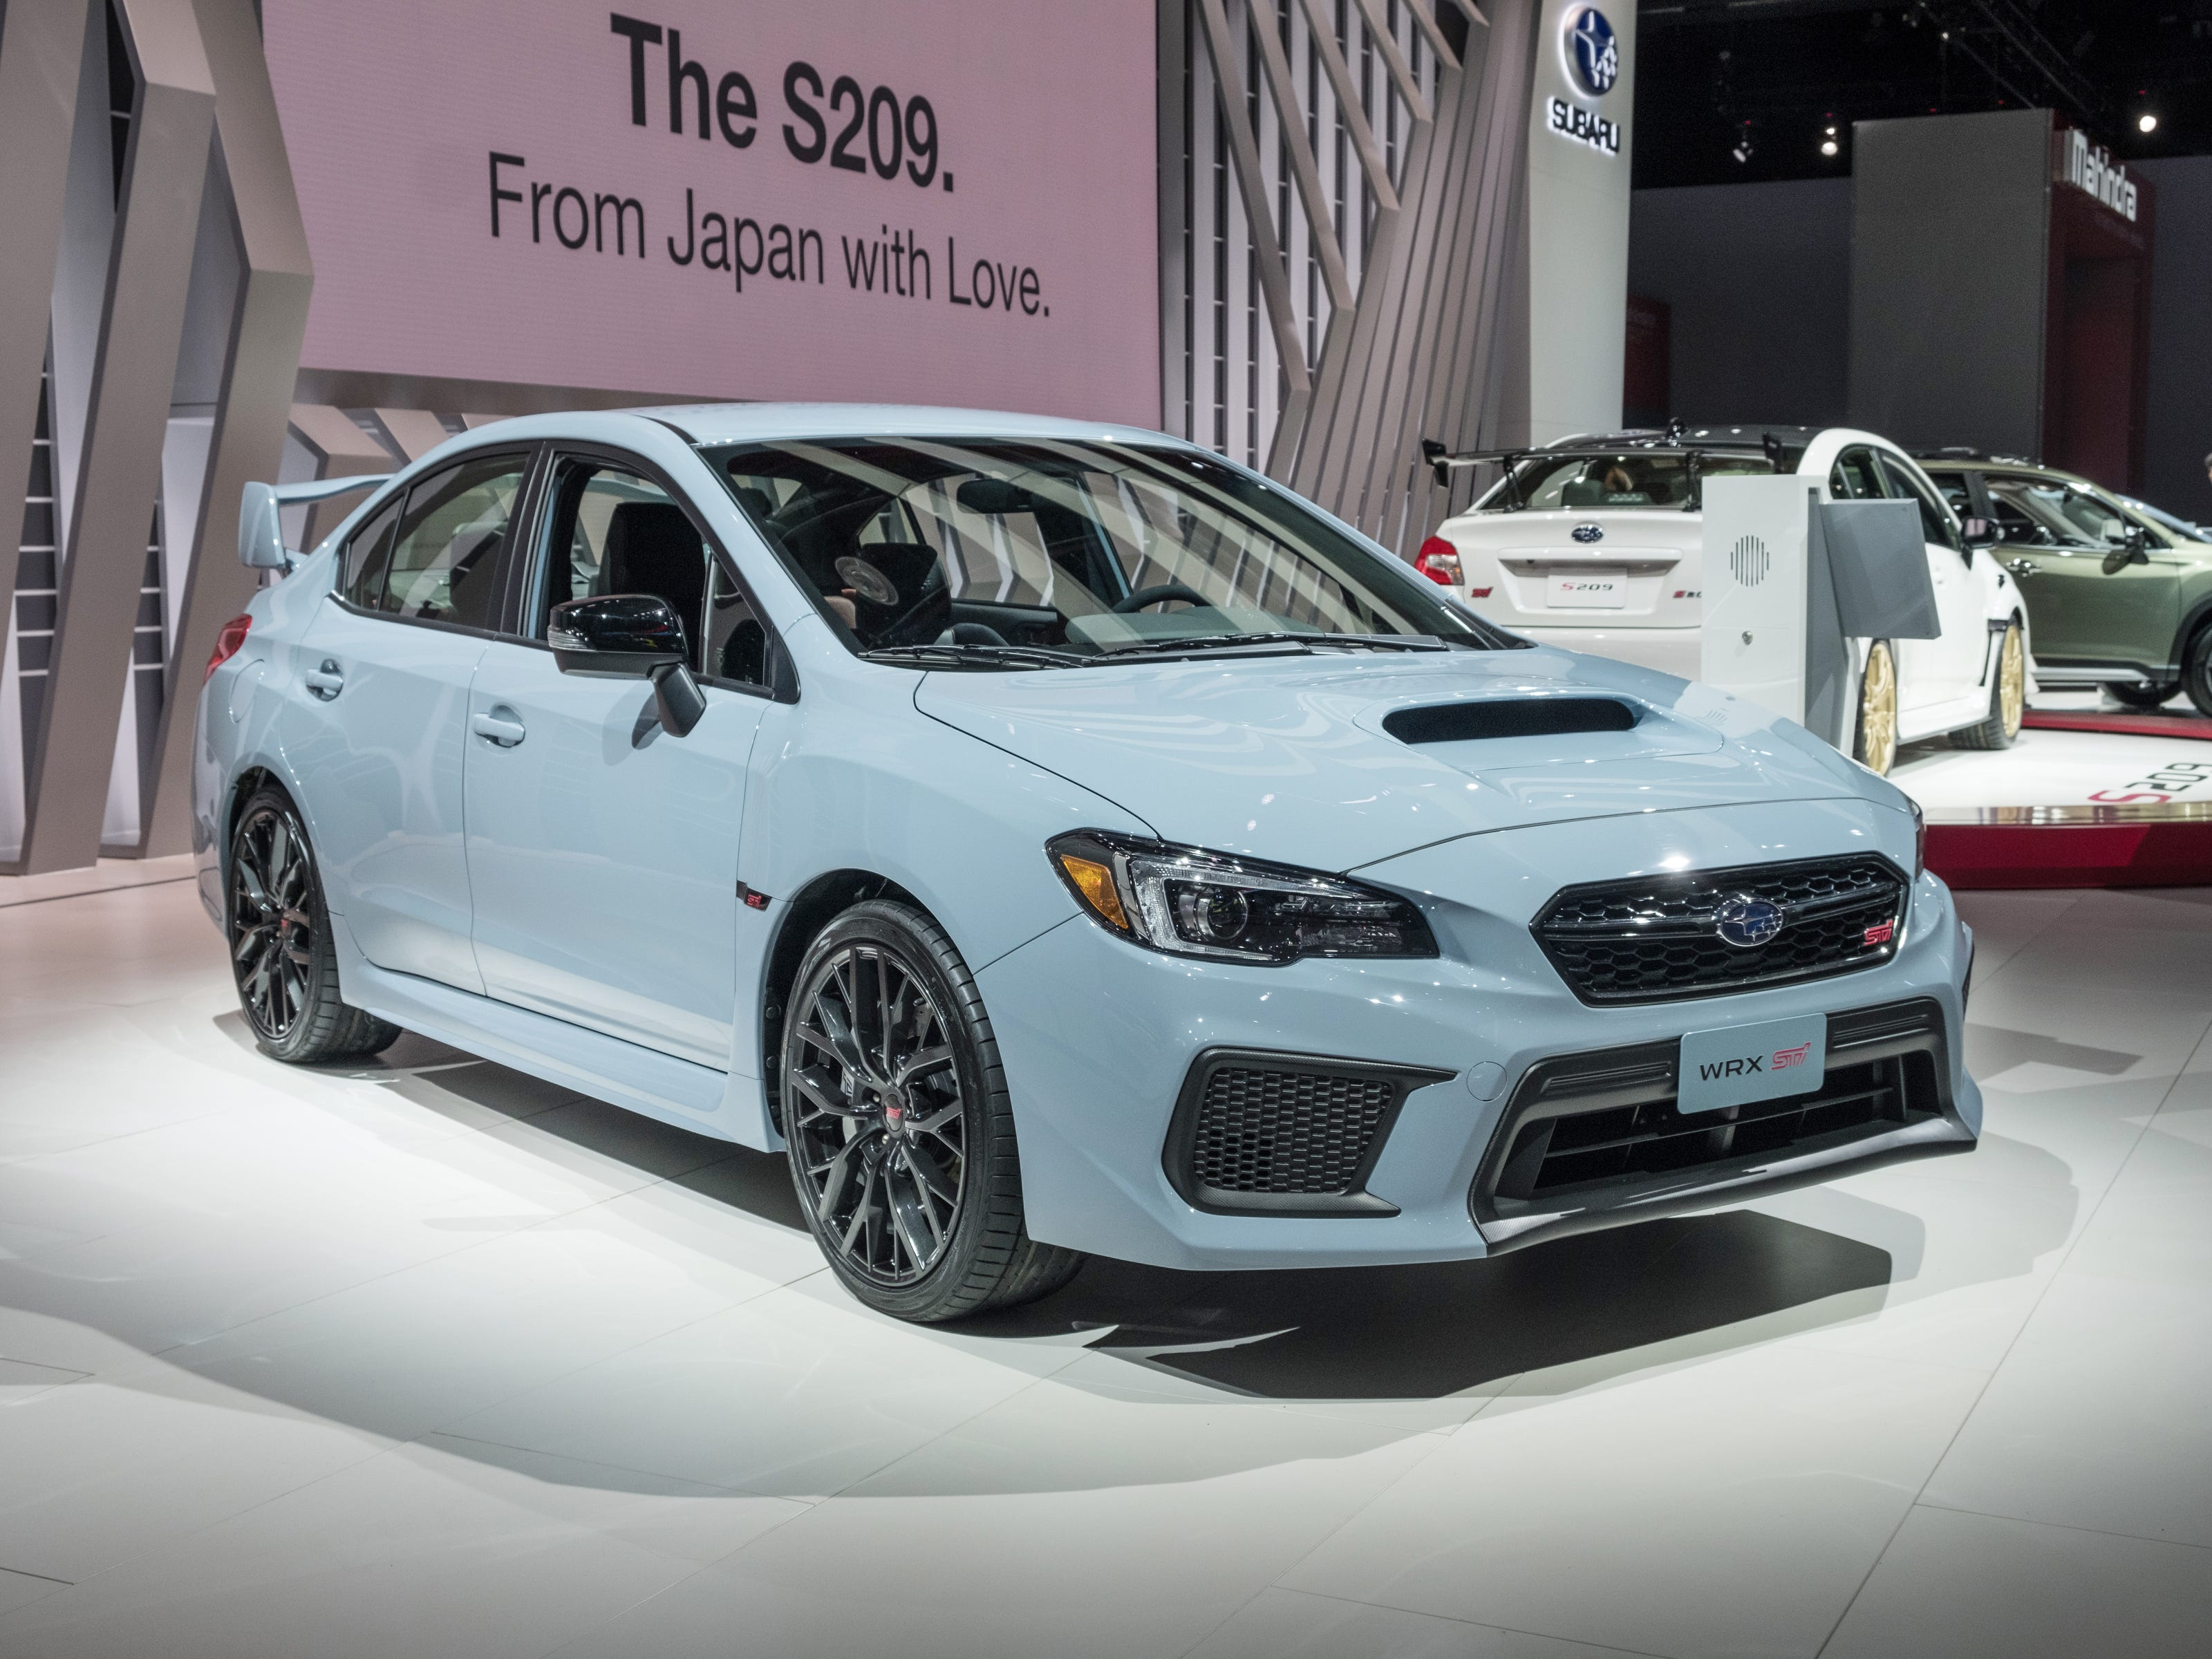 A 2019 Subaru WRX STi sits on the stage during the 2019 North American International Auto Show held at Cobo Center in downtown Detroit on Tuesday, Jan. 15, 2019.  (Via OlyDrop)